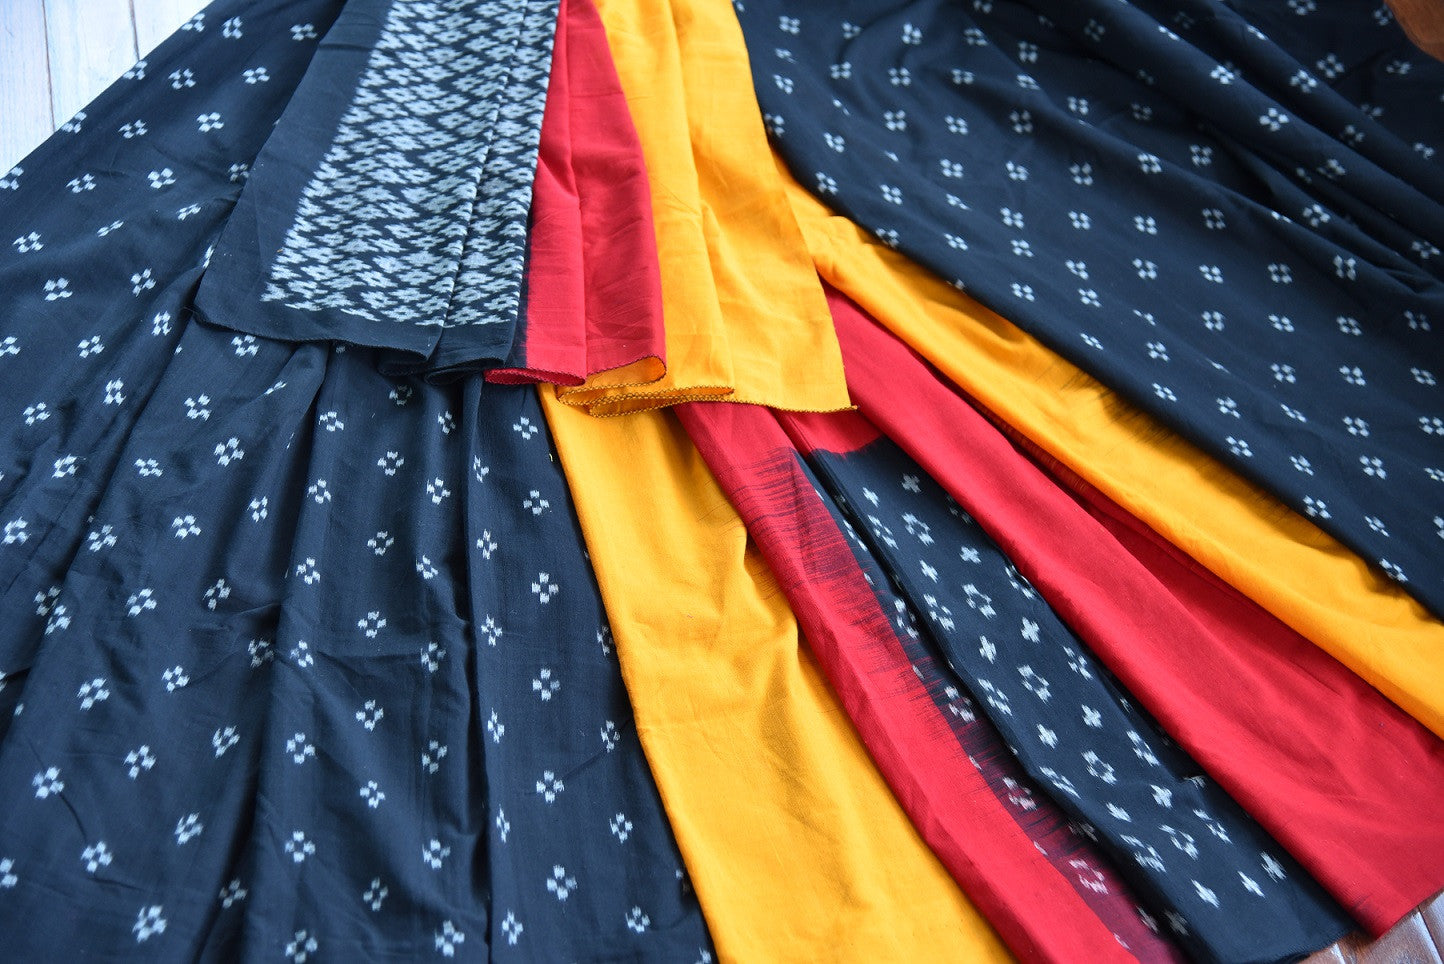 90D434 Eye-catching saree with traditional Indian design. The black cotton ikkat saree has pops of red and yellow and can be bought at Pure Elegance - our online Indian clothing store in USA.